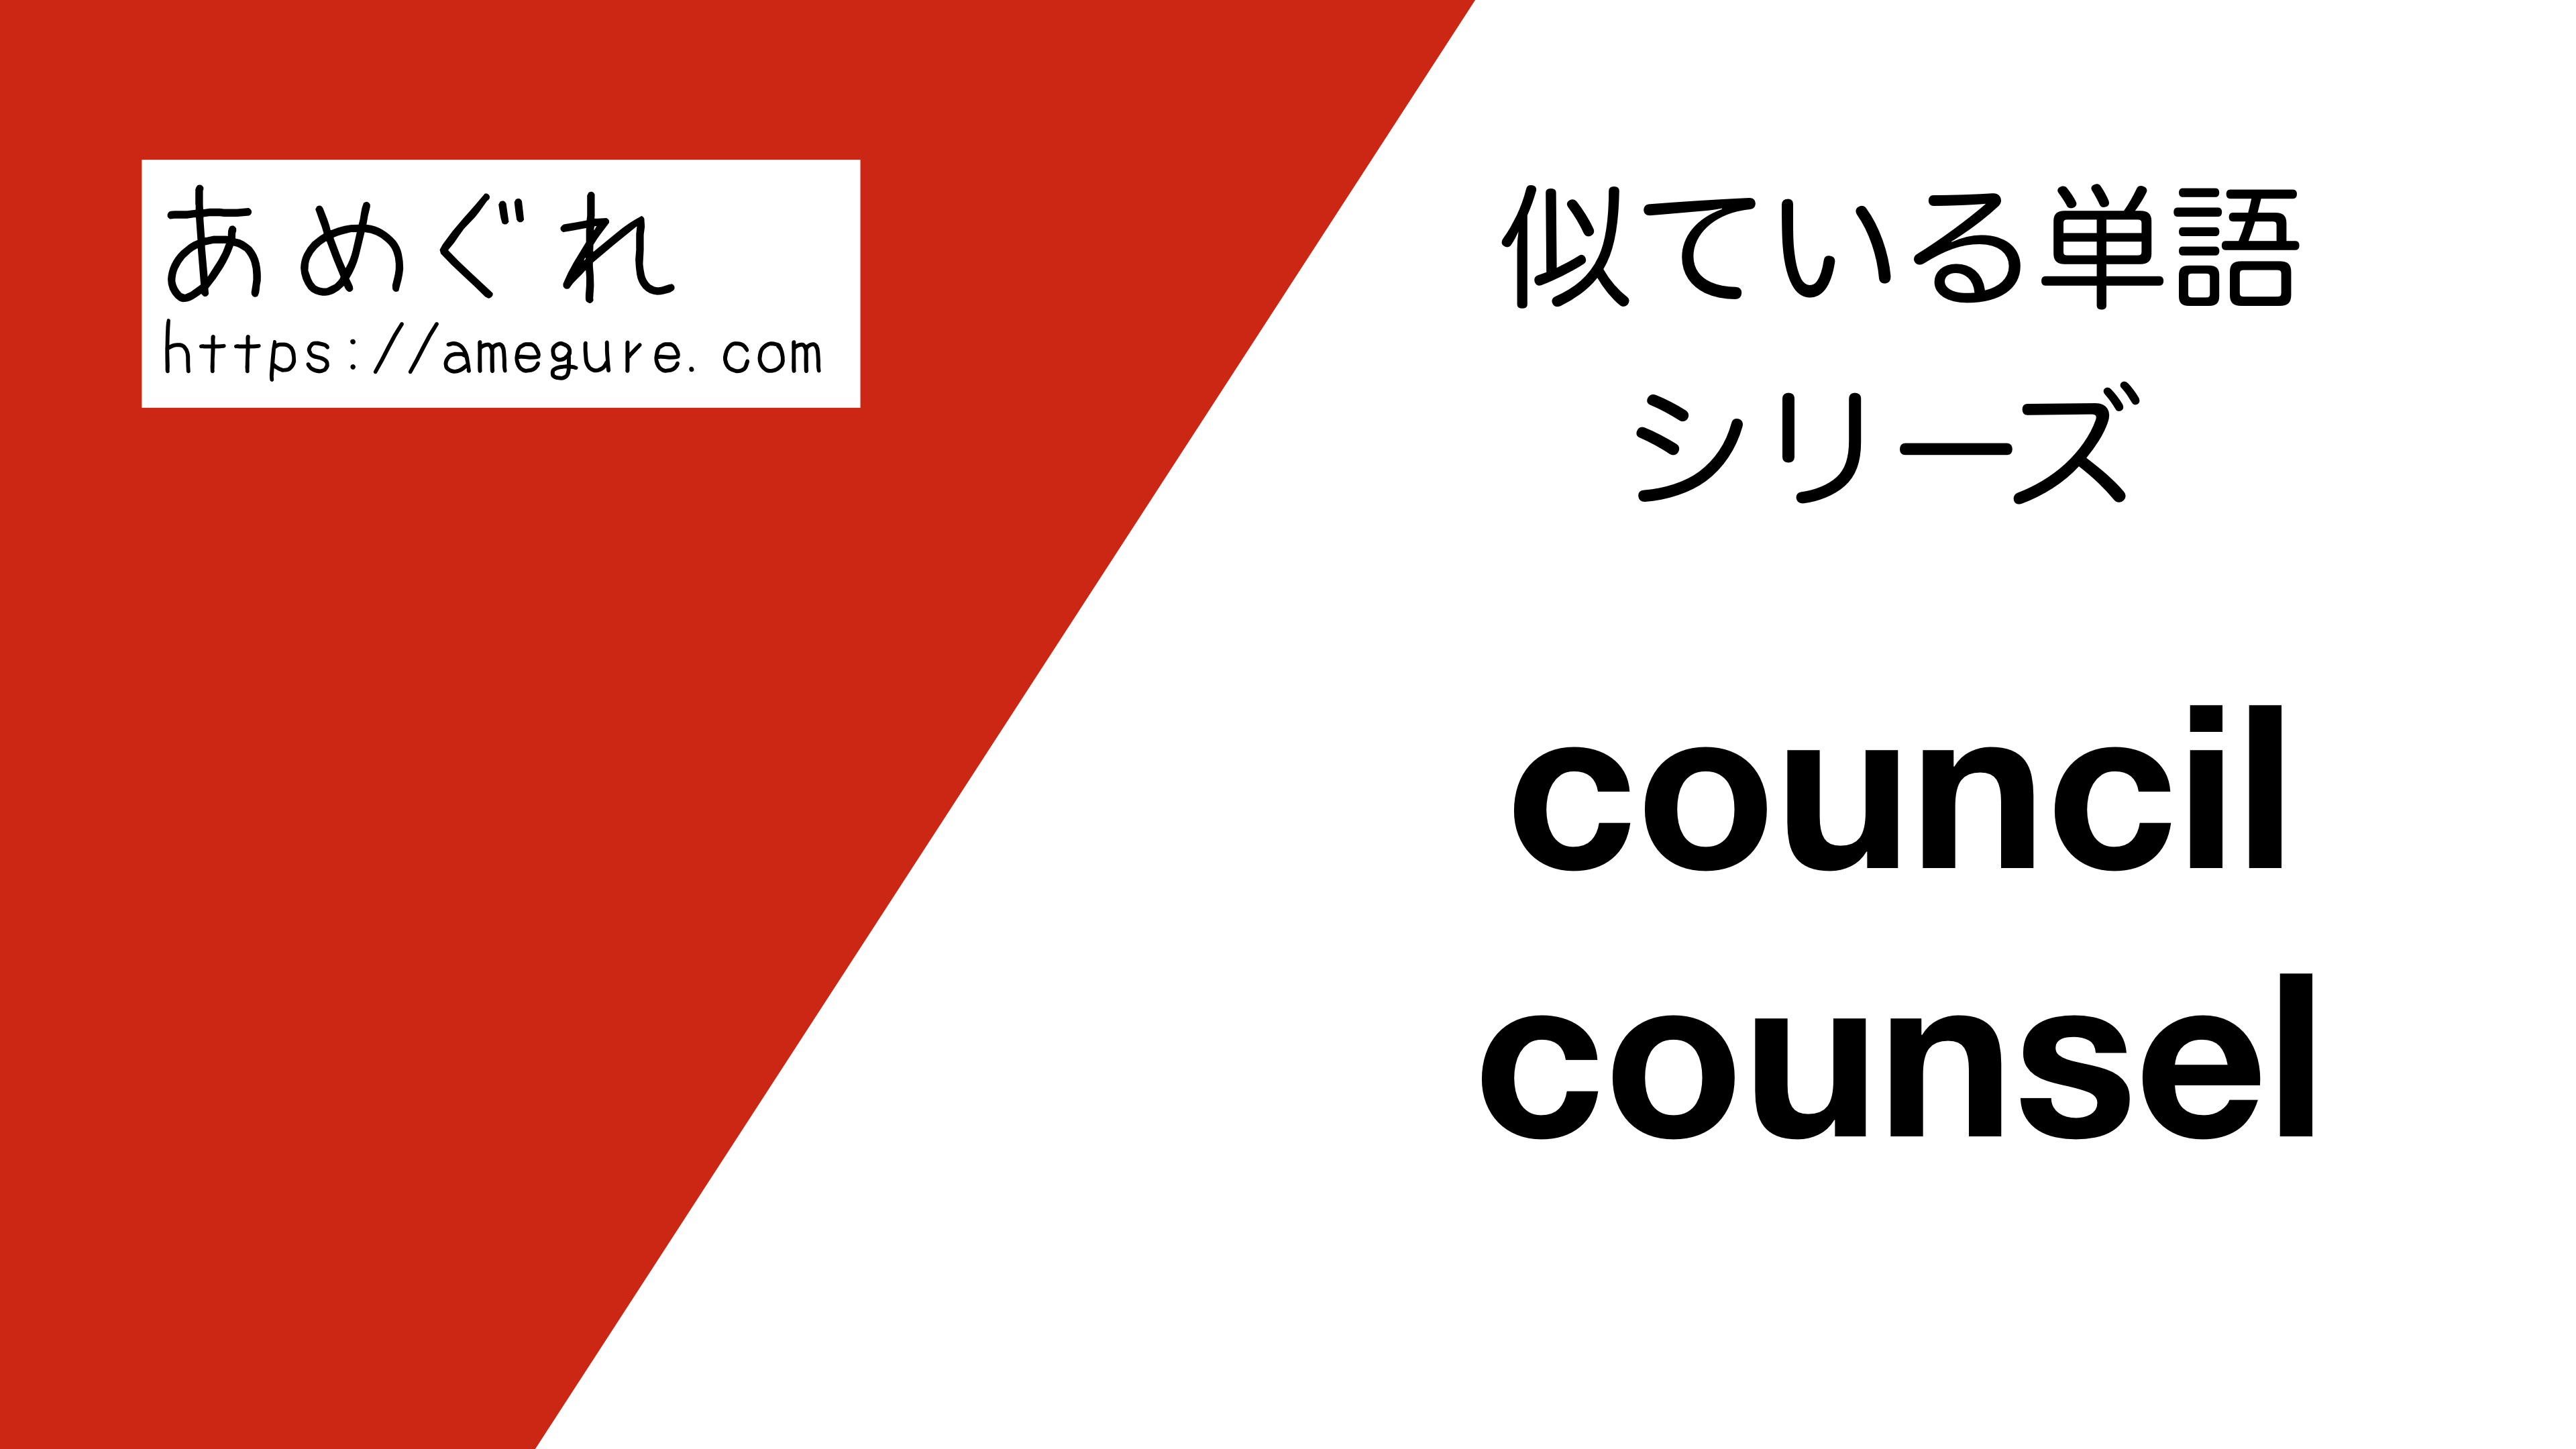 council-counsel違い